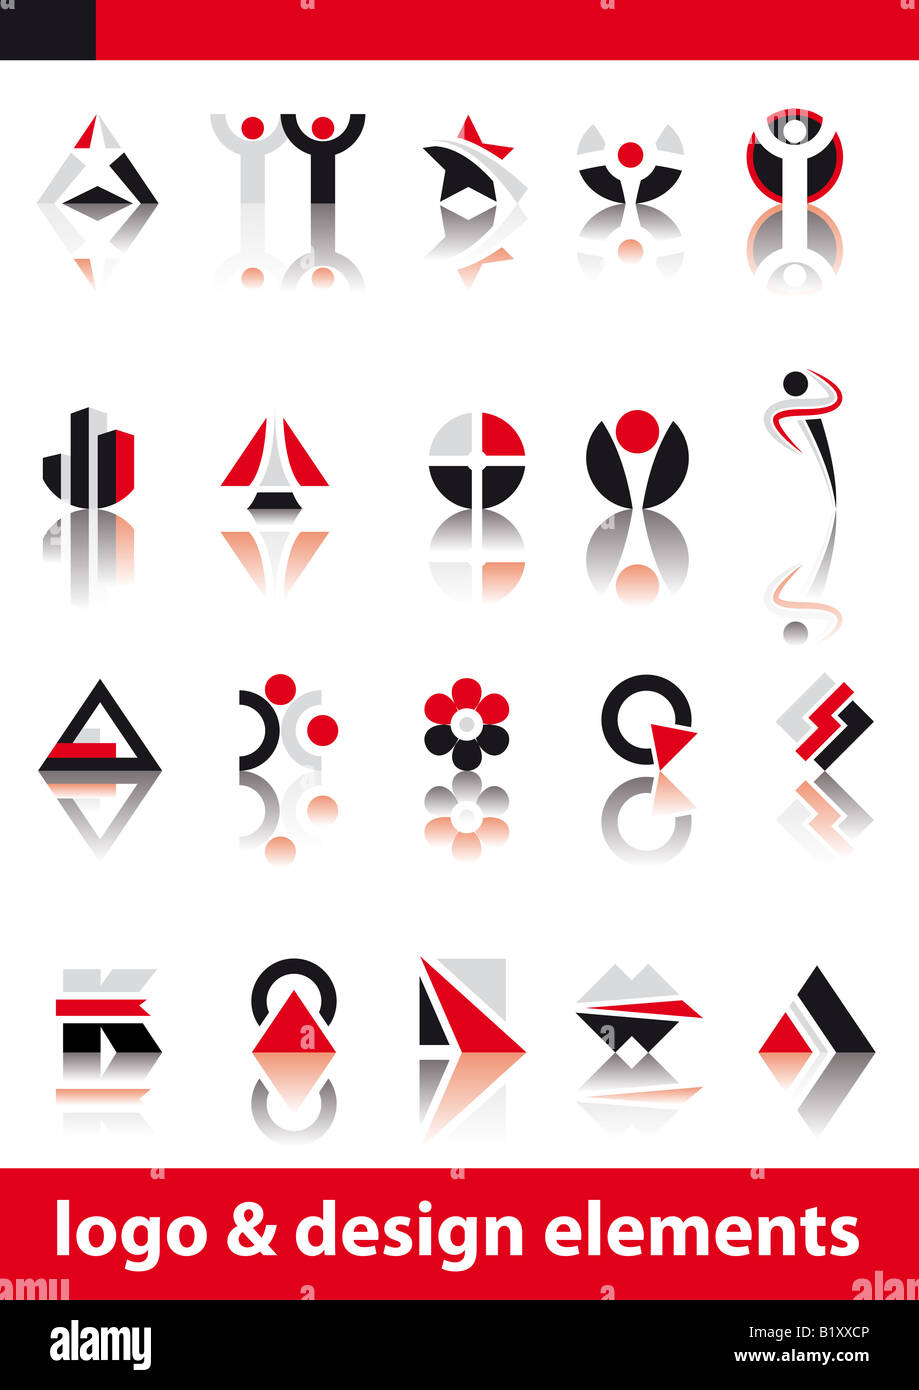 Abstract vector illustration of logo and design elements - Stock Image